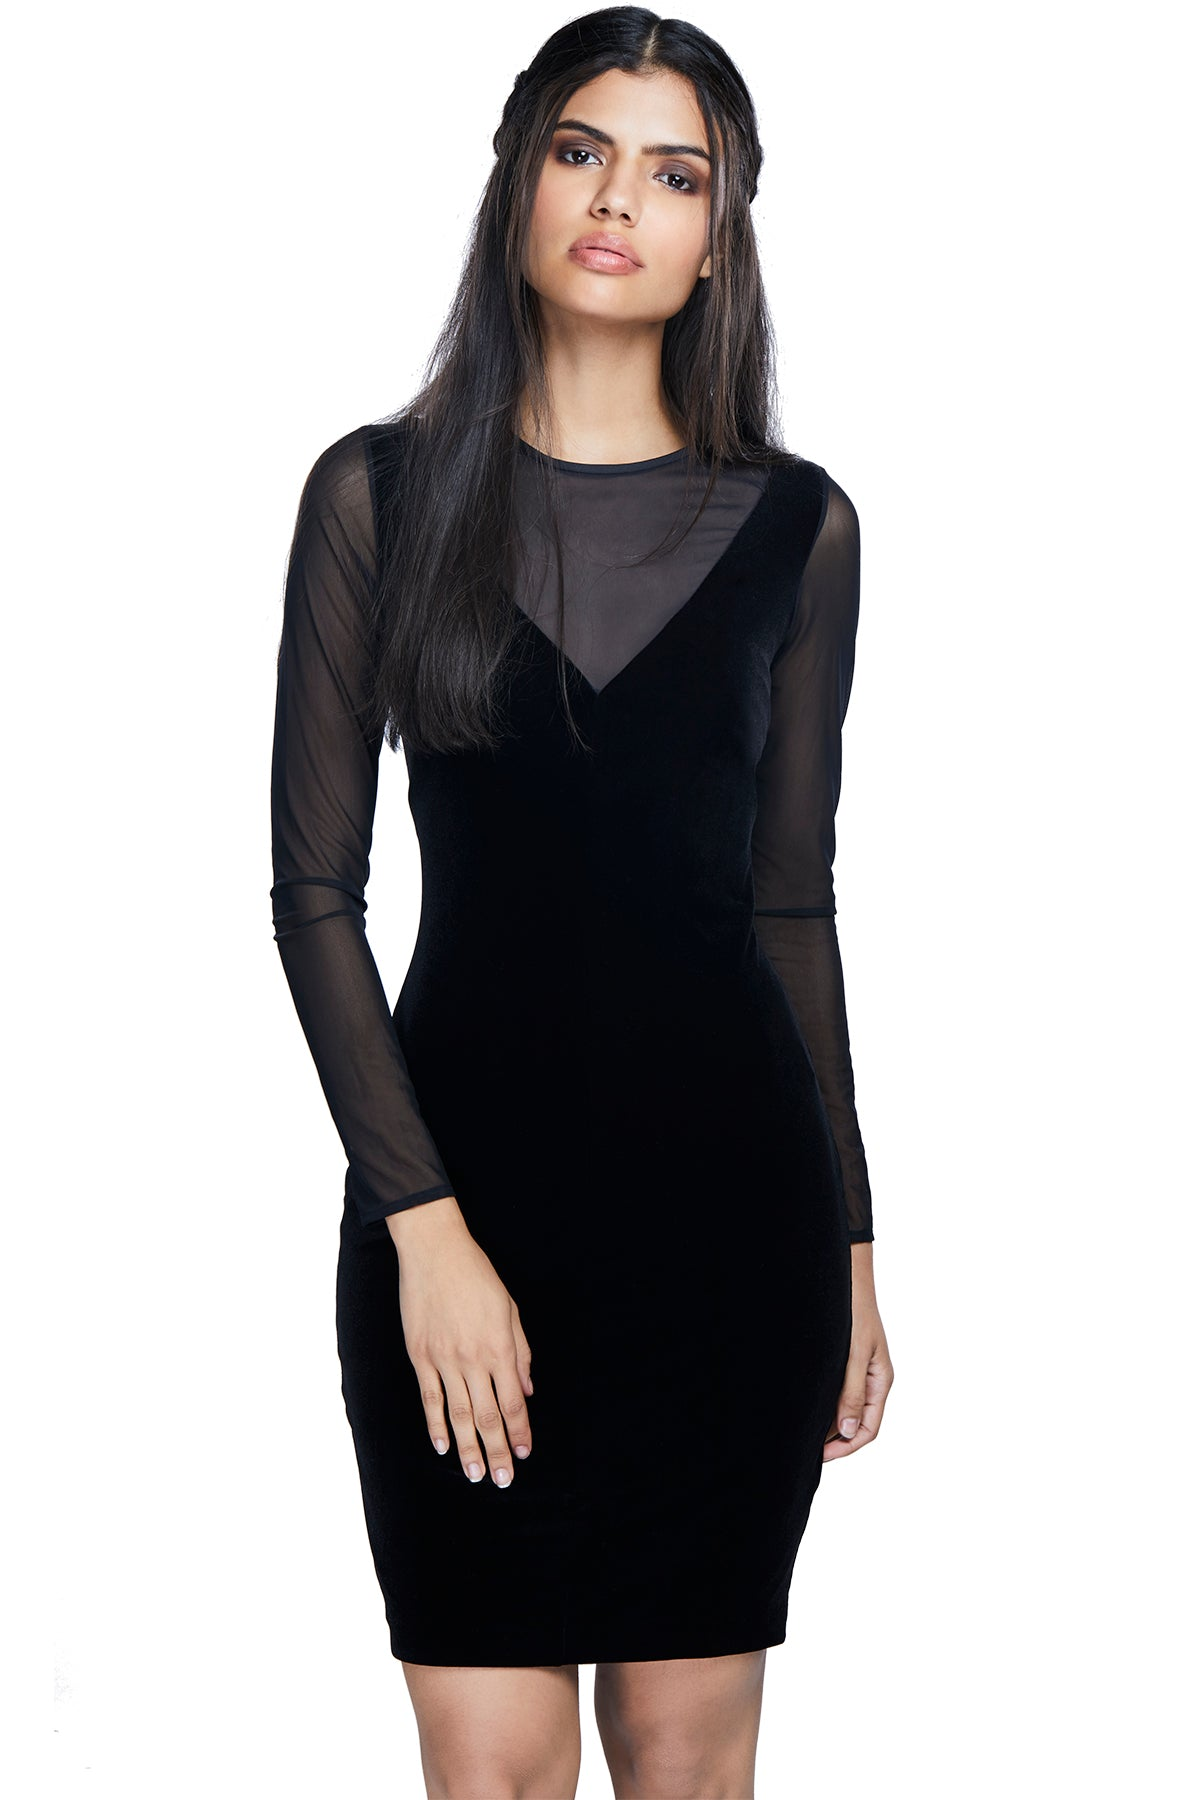 Take the plunge in this lush velvet dress with a v-neck and net at the neckline.